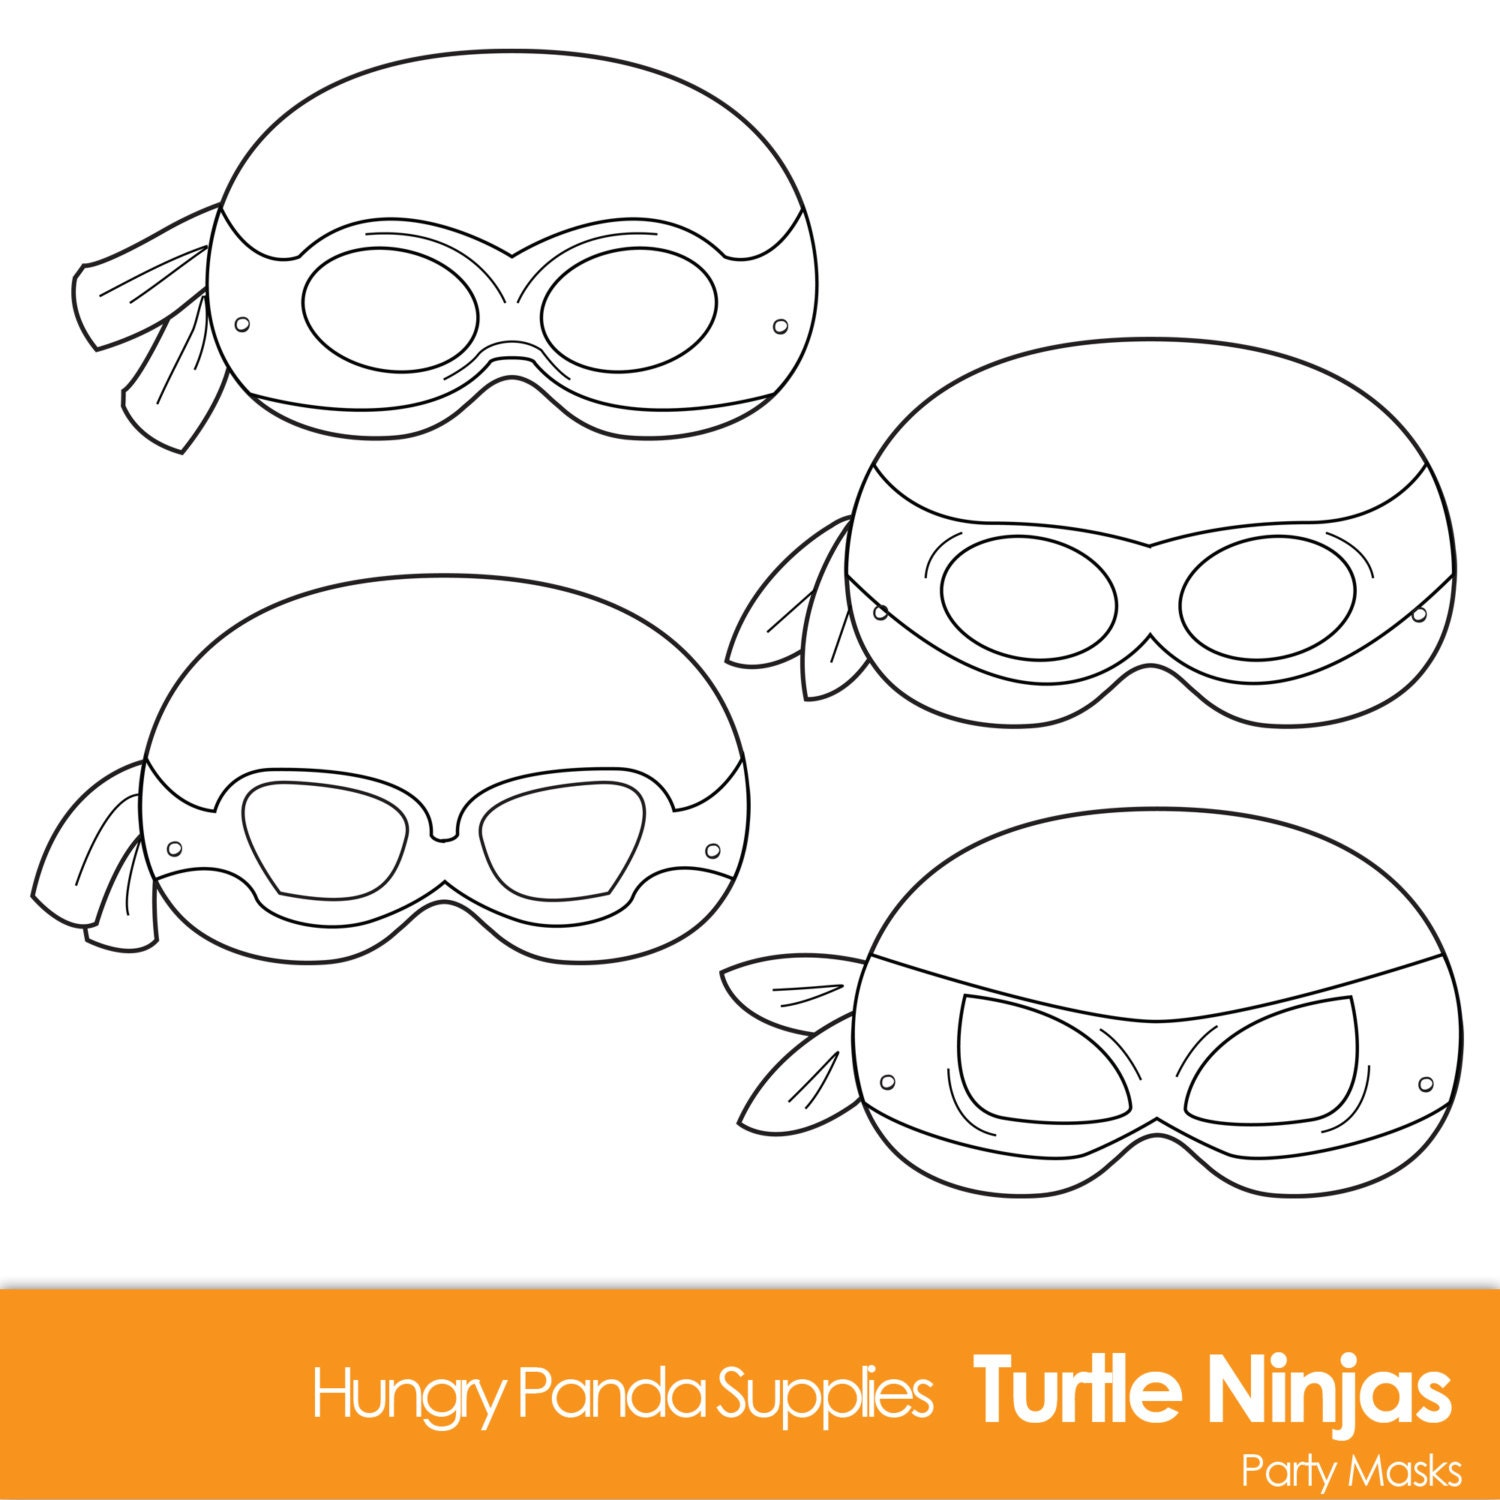 Handy image regarding ninja turtles mask printable